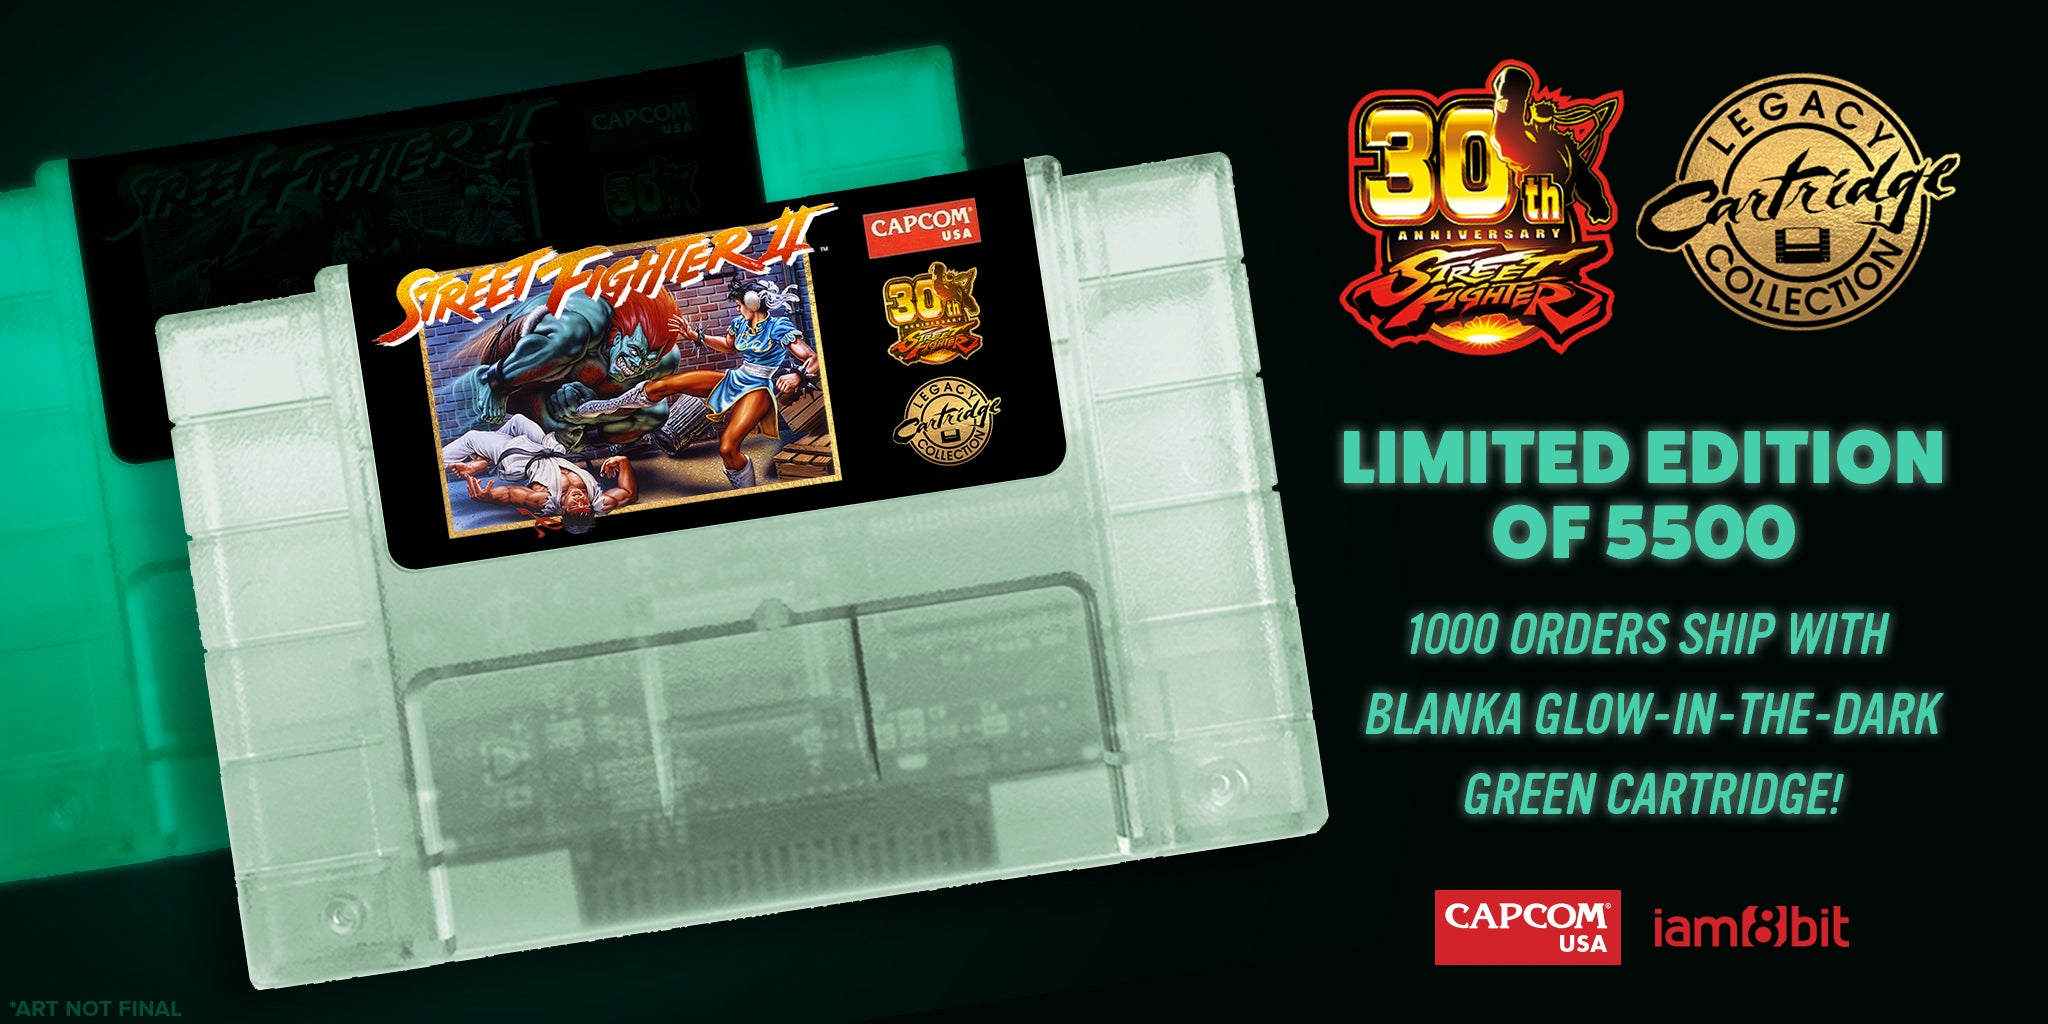 Capcom Is Re-Releasing Street Fighter II on the SNES